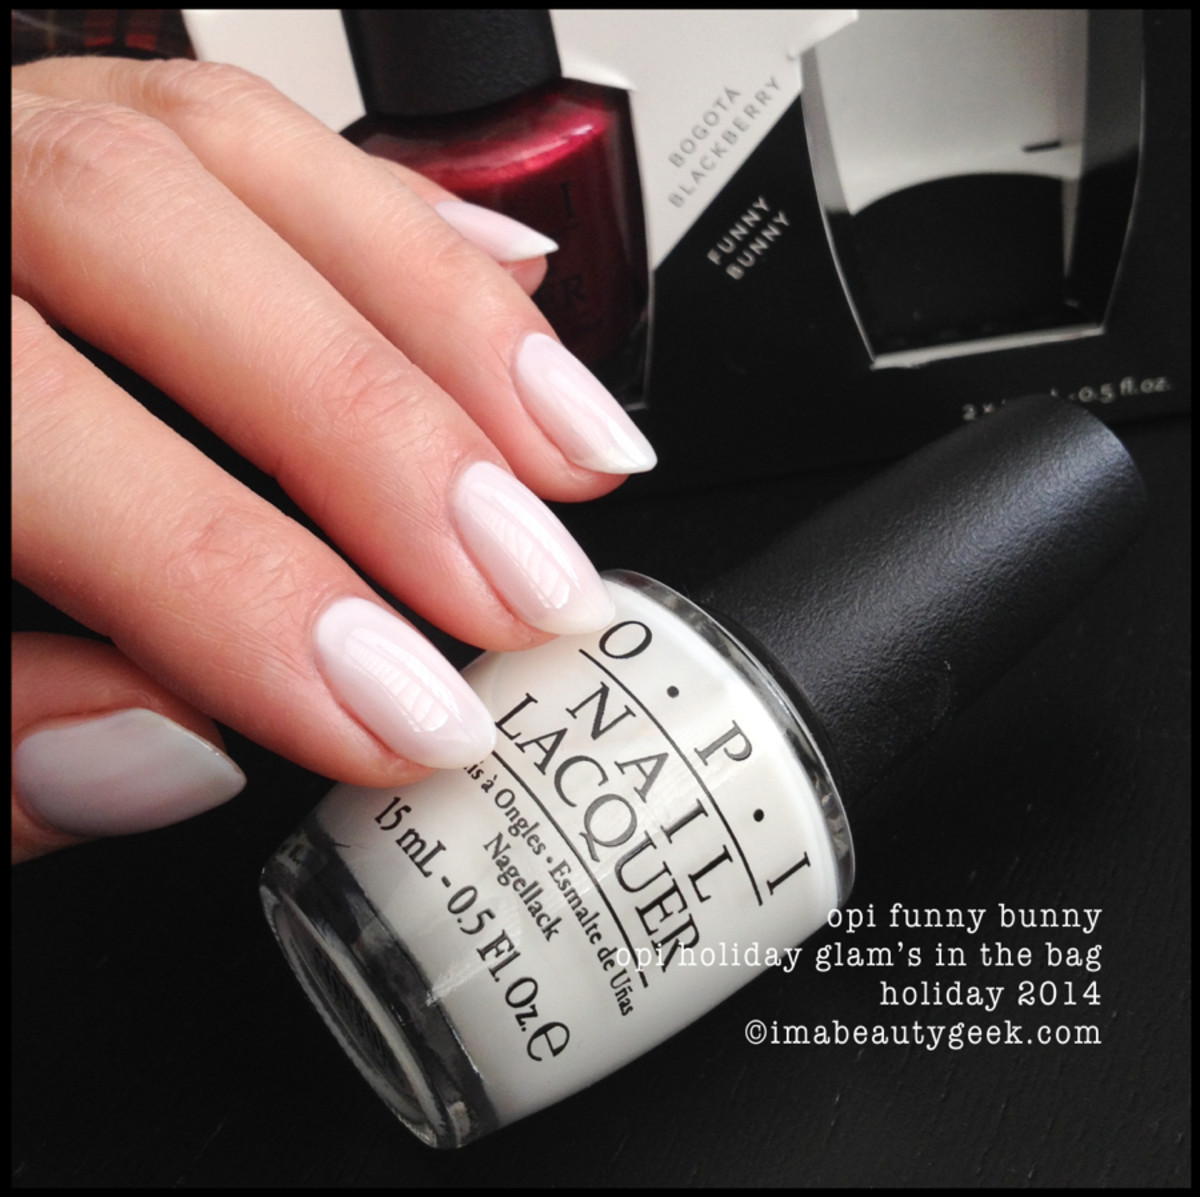 OPI Holiday 2014 Funny Bunny